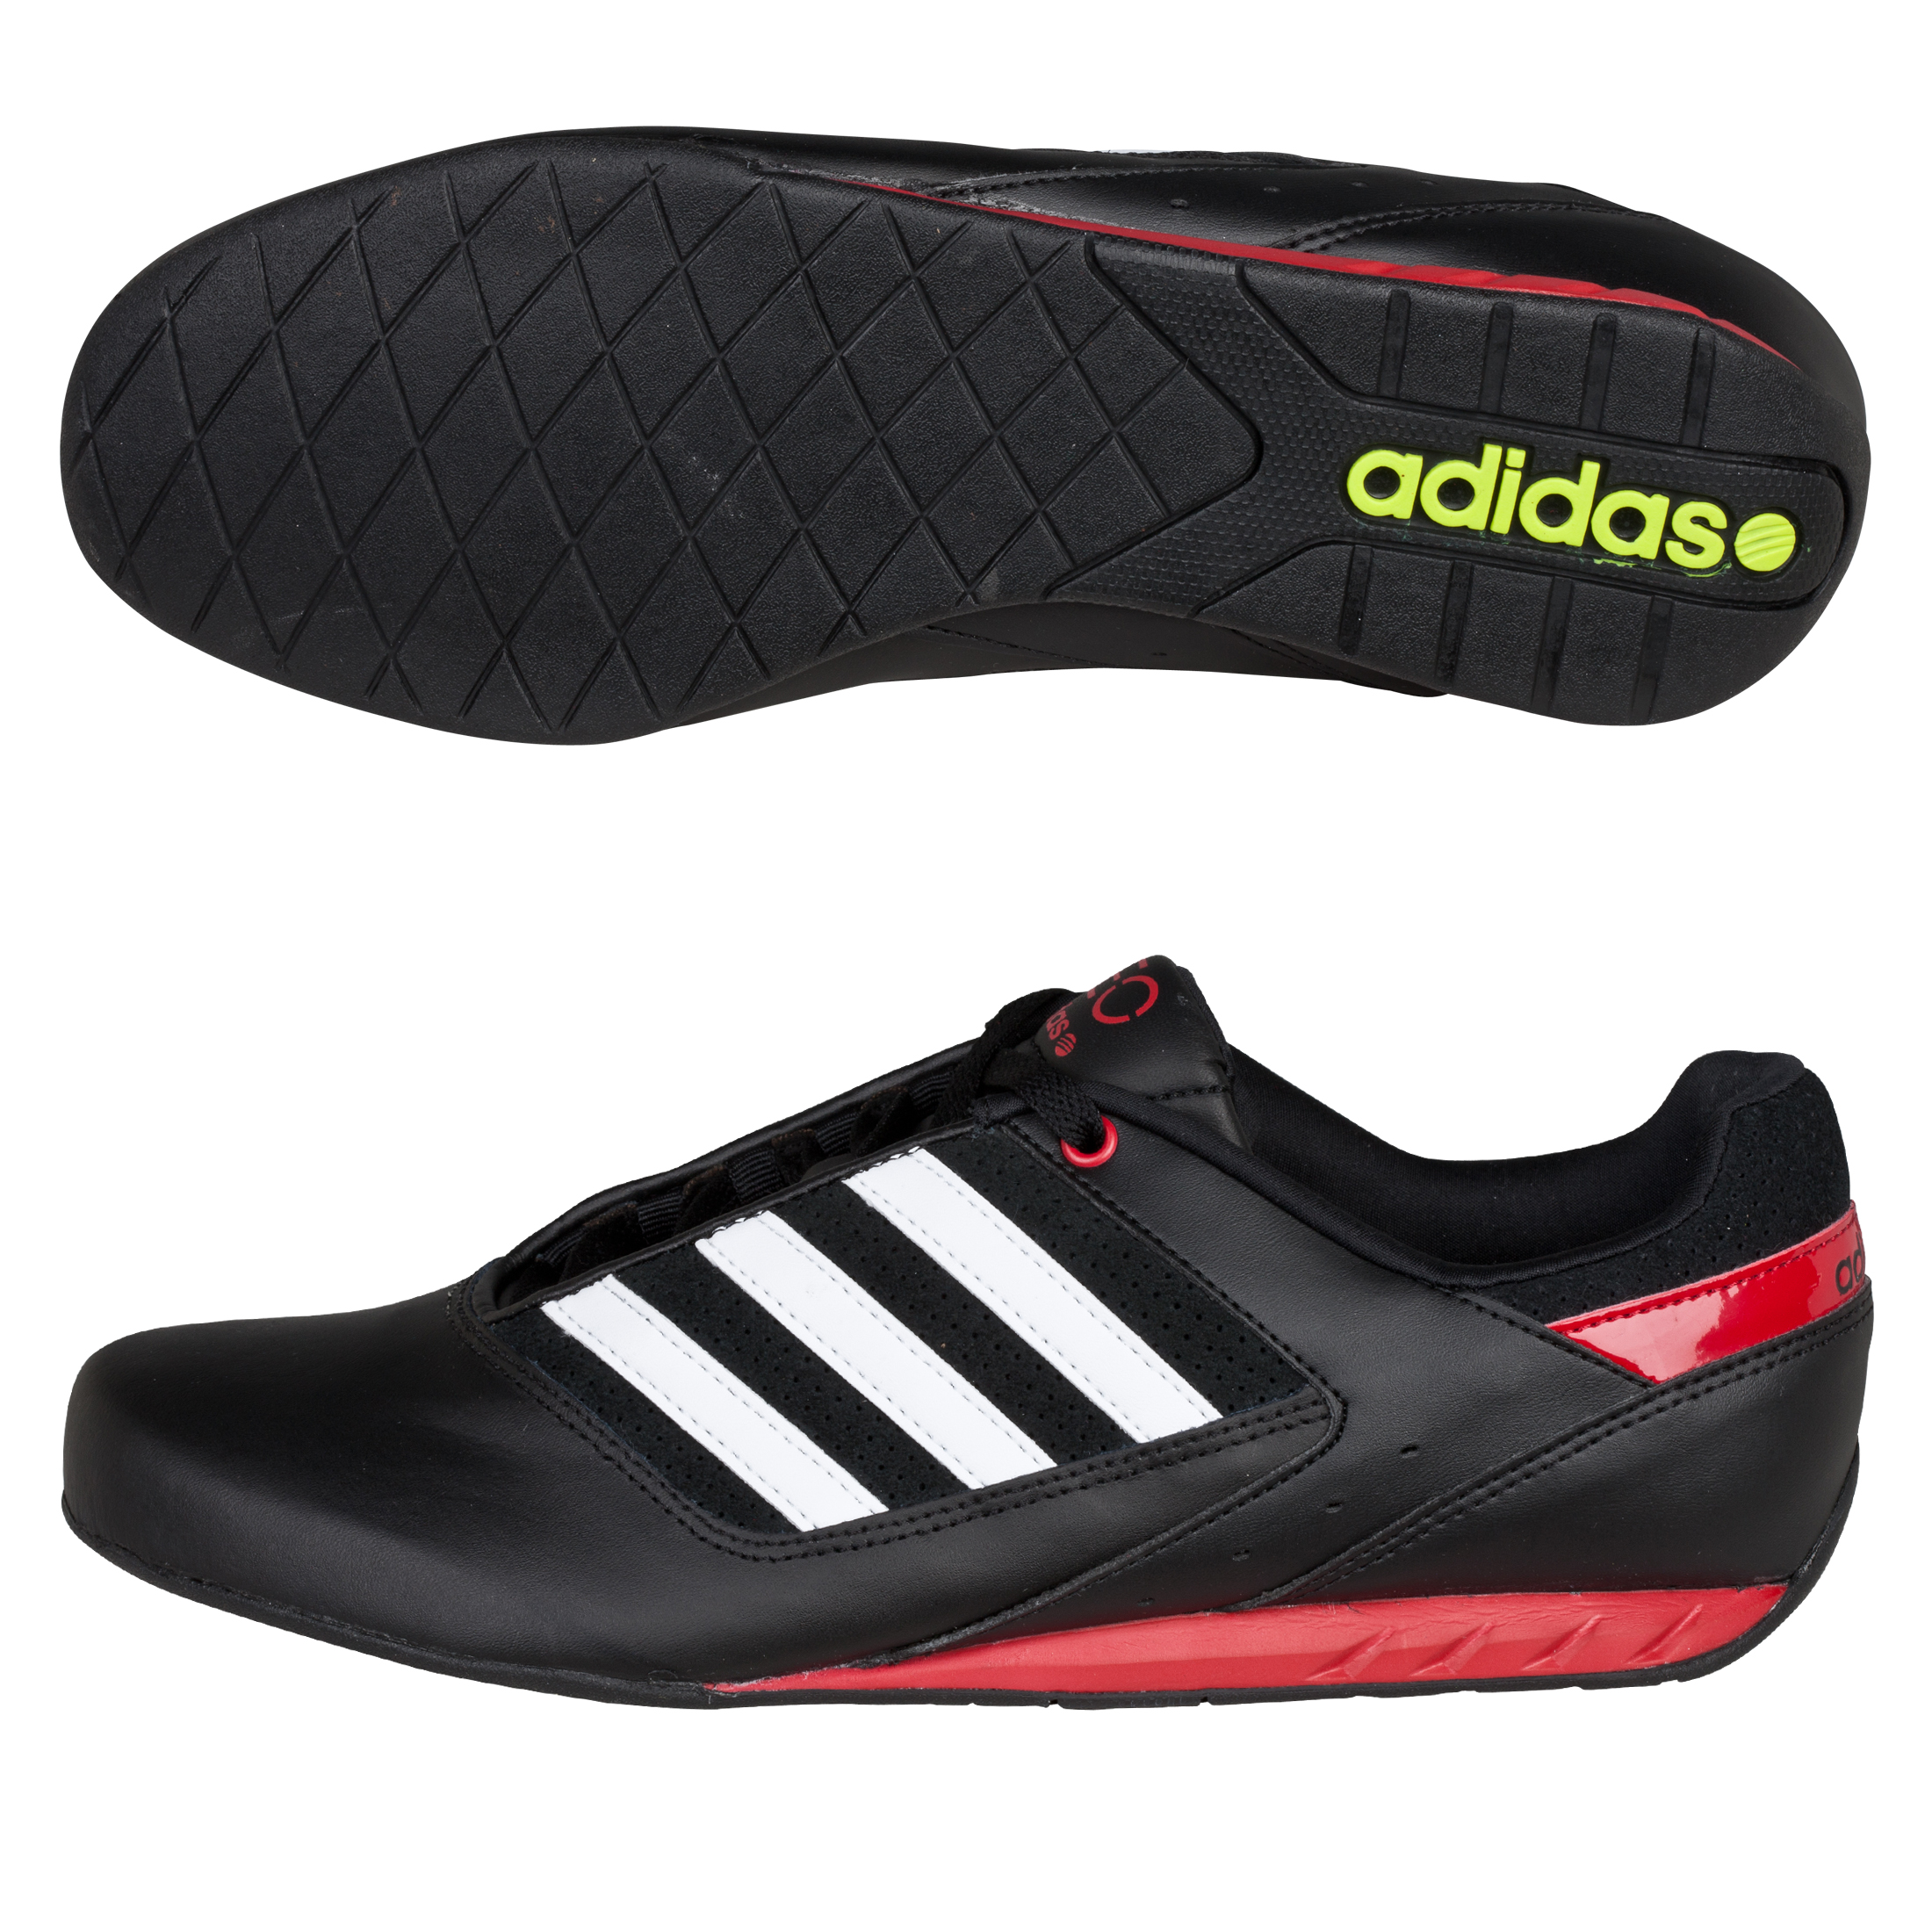 adidas Ralley Lo Trainers - Black 1 / Running White Ftw / University Red